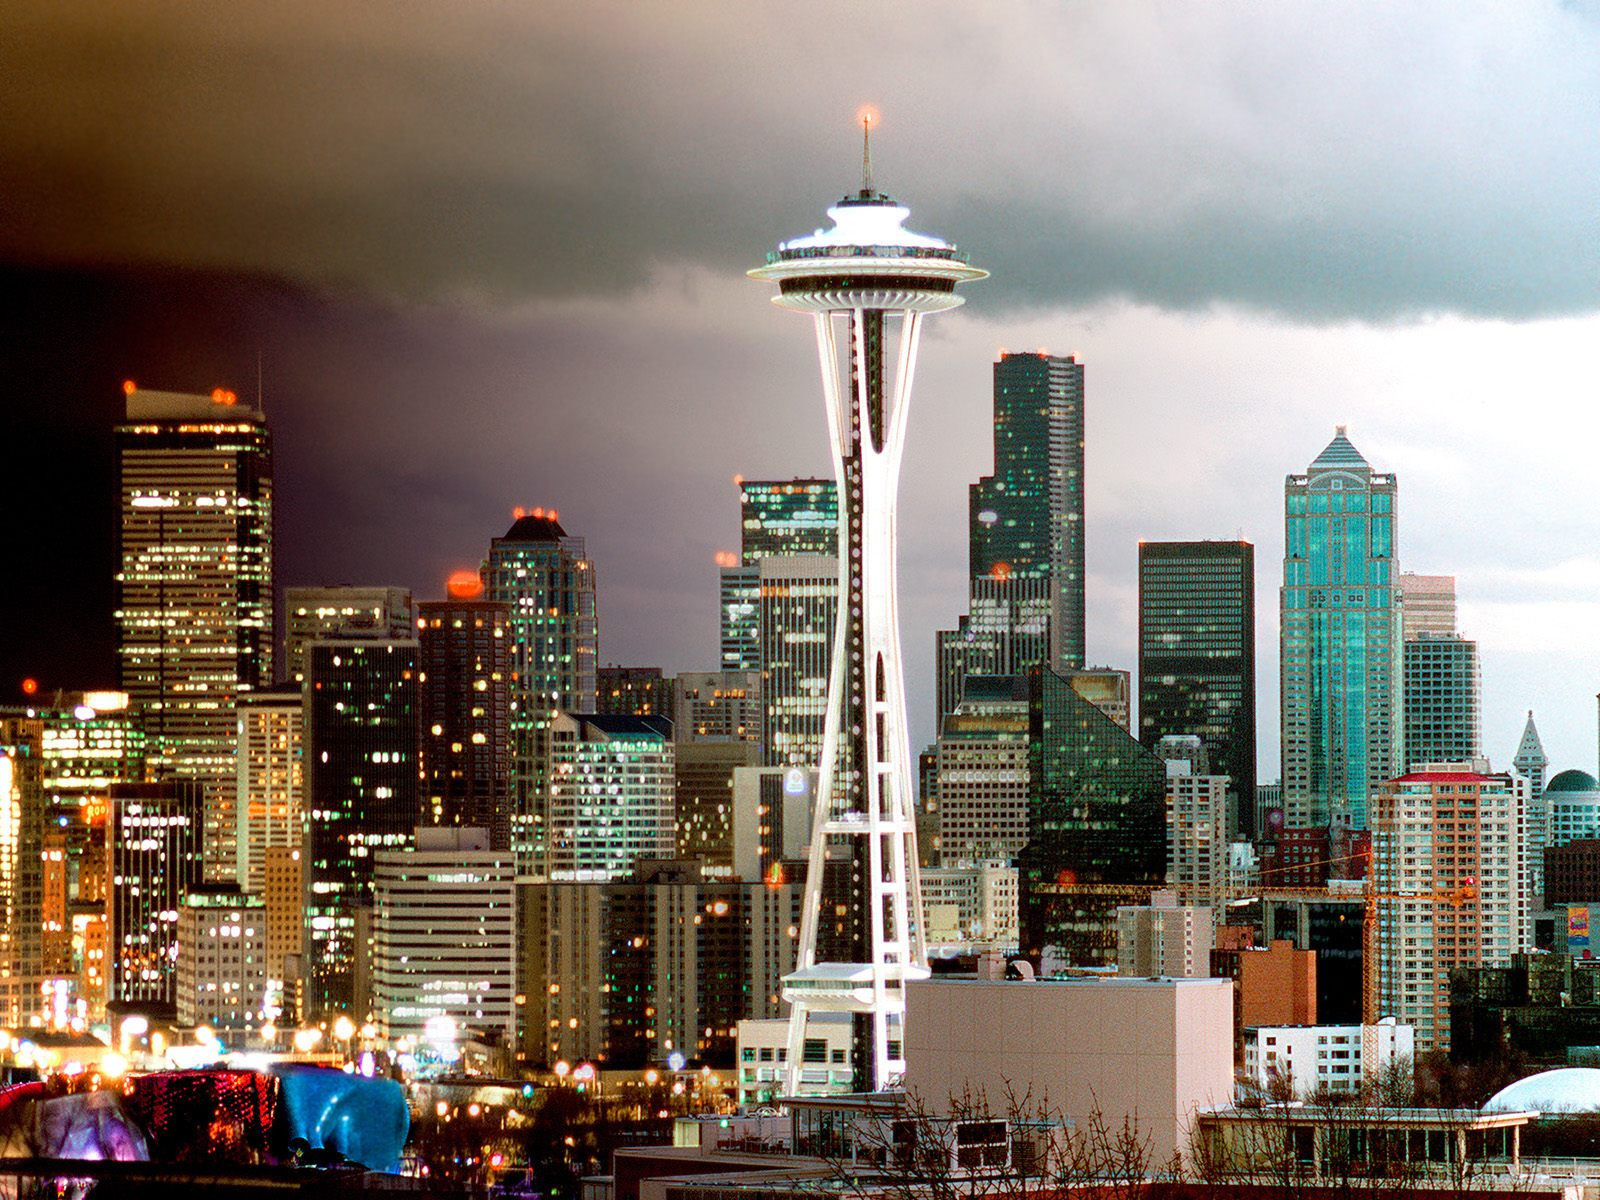 Download this Seattle wallpapers and place them on your desktop 1600x1200